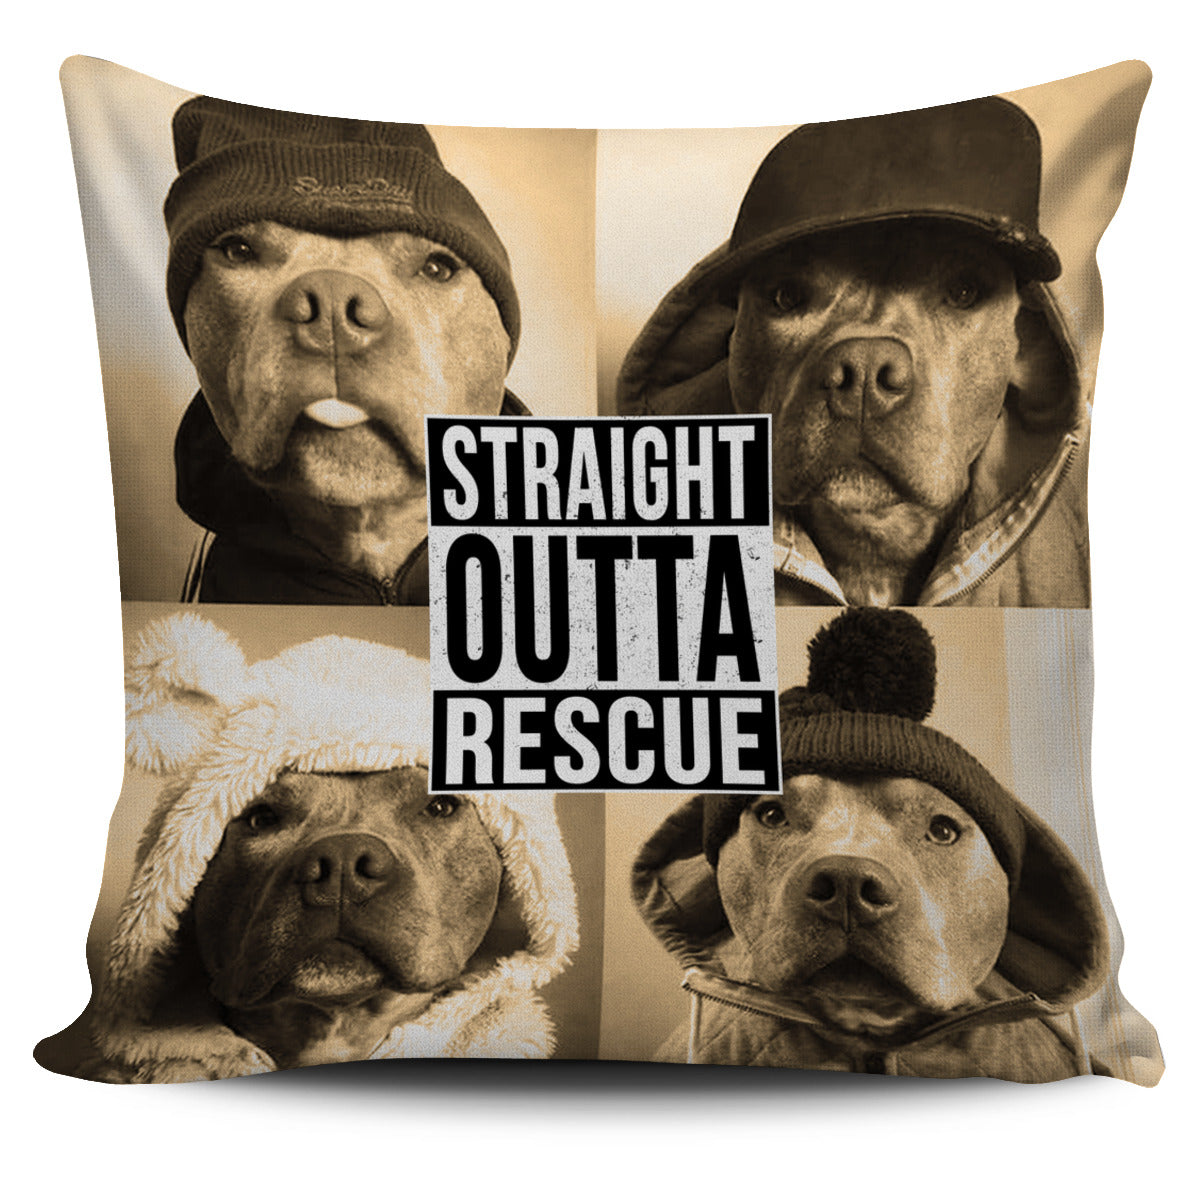 Straight Outta Rescue Pillow Cover